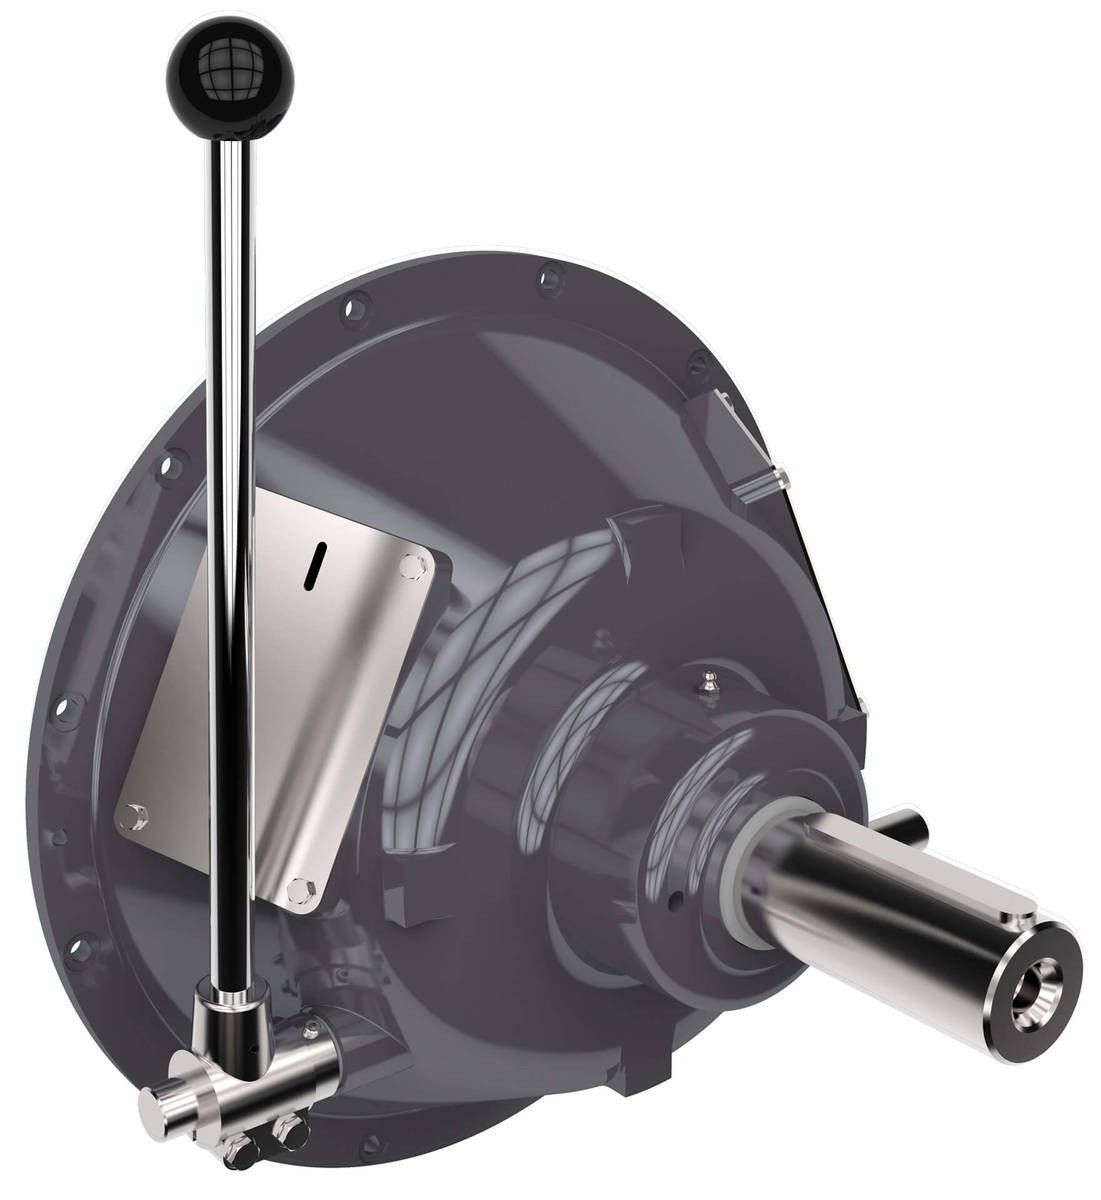 Desch Planox® PMA actuated mechanically, bell-shaped model  Multi Plate Friction Clutch Image